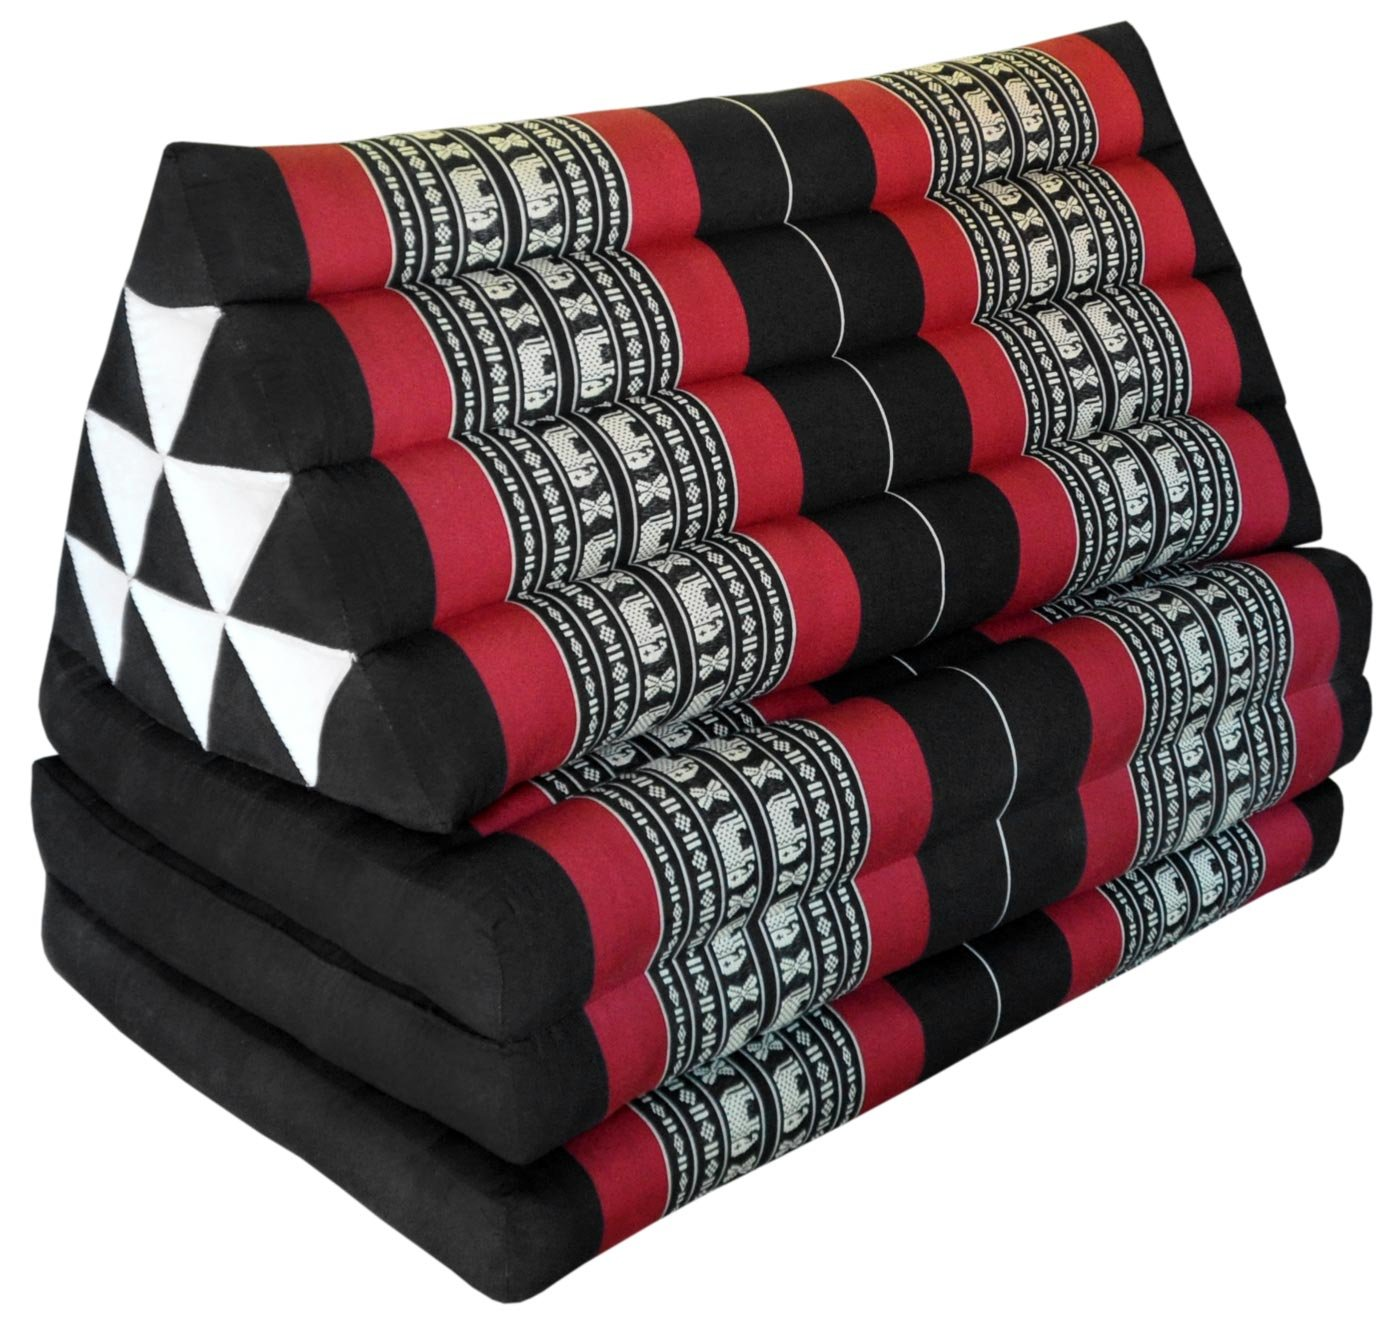 Thai triangle cushion/mattress XXL, with 3 folding seats, black/red, sofa, relaxation, beach, pool, meditation, yoga, made in Thailand. (81618)